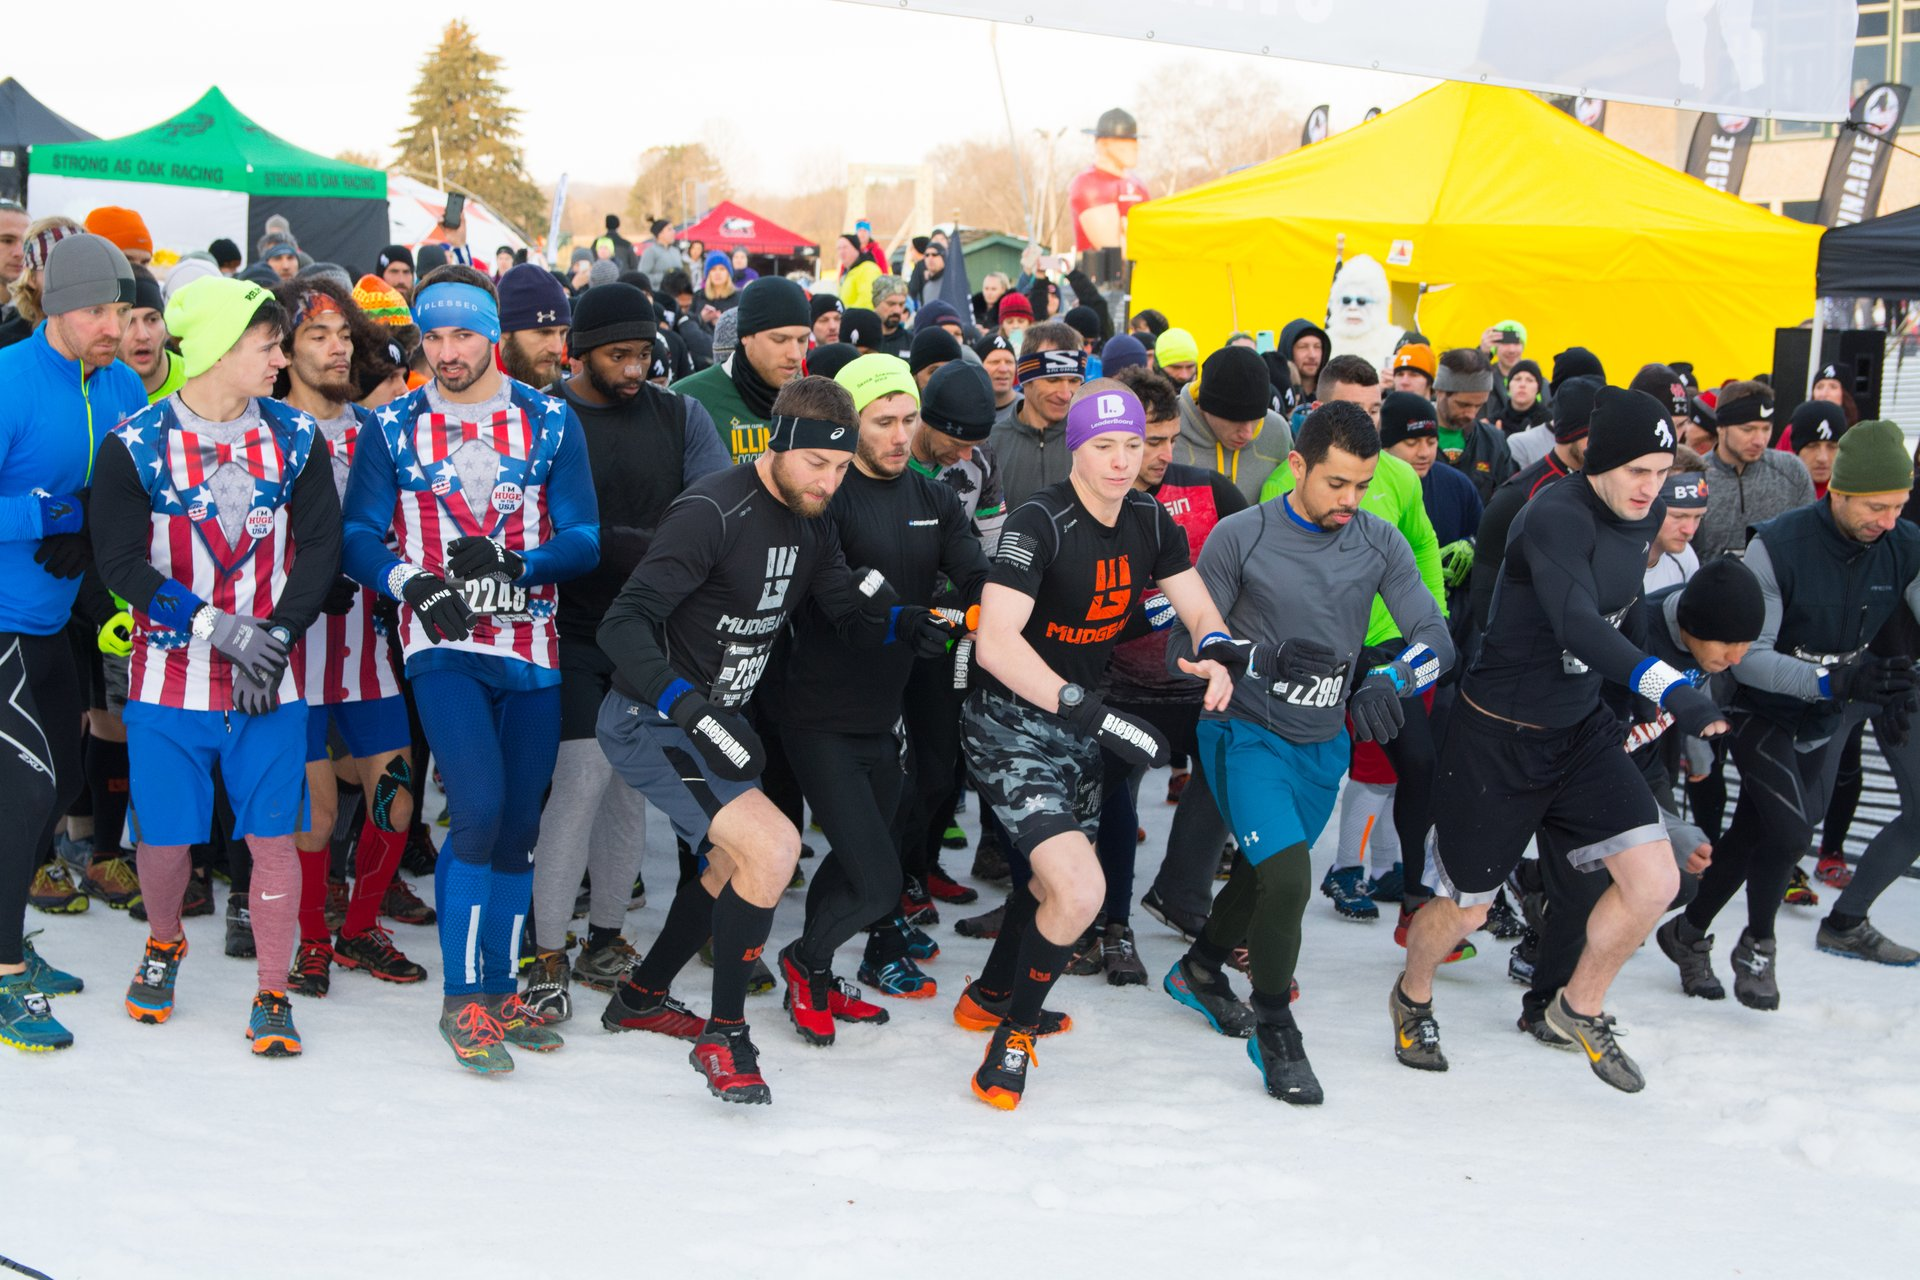 The Abominable Snow Race in Midwest 2020 - Best Time